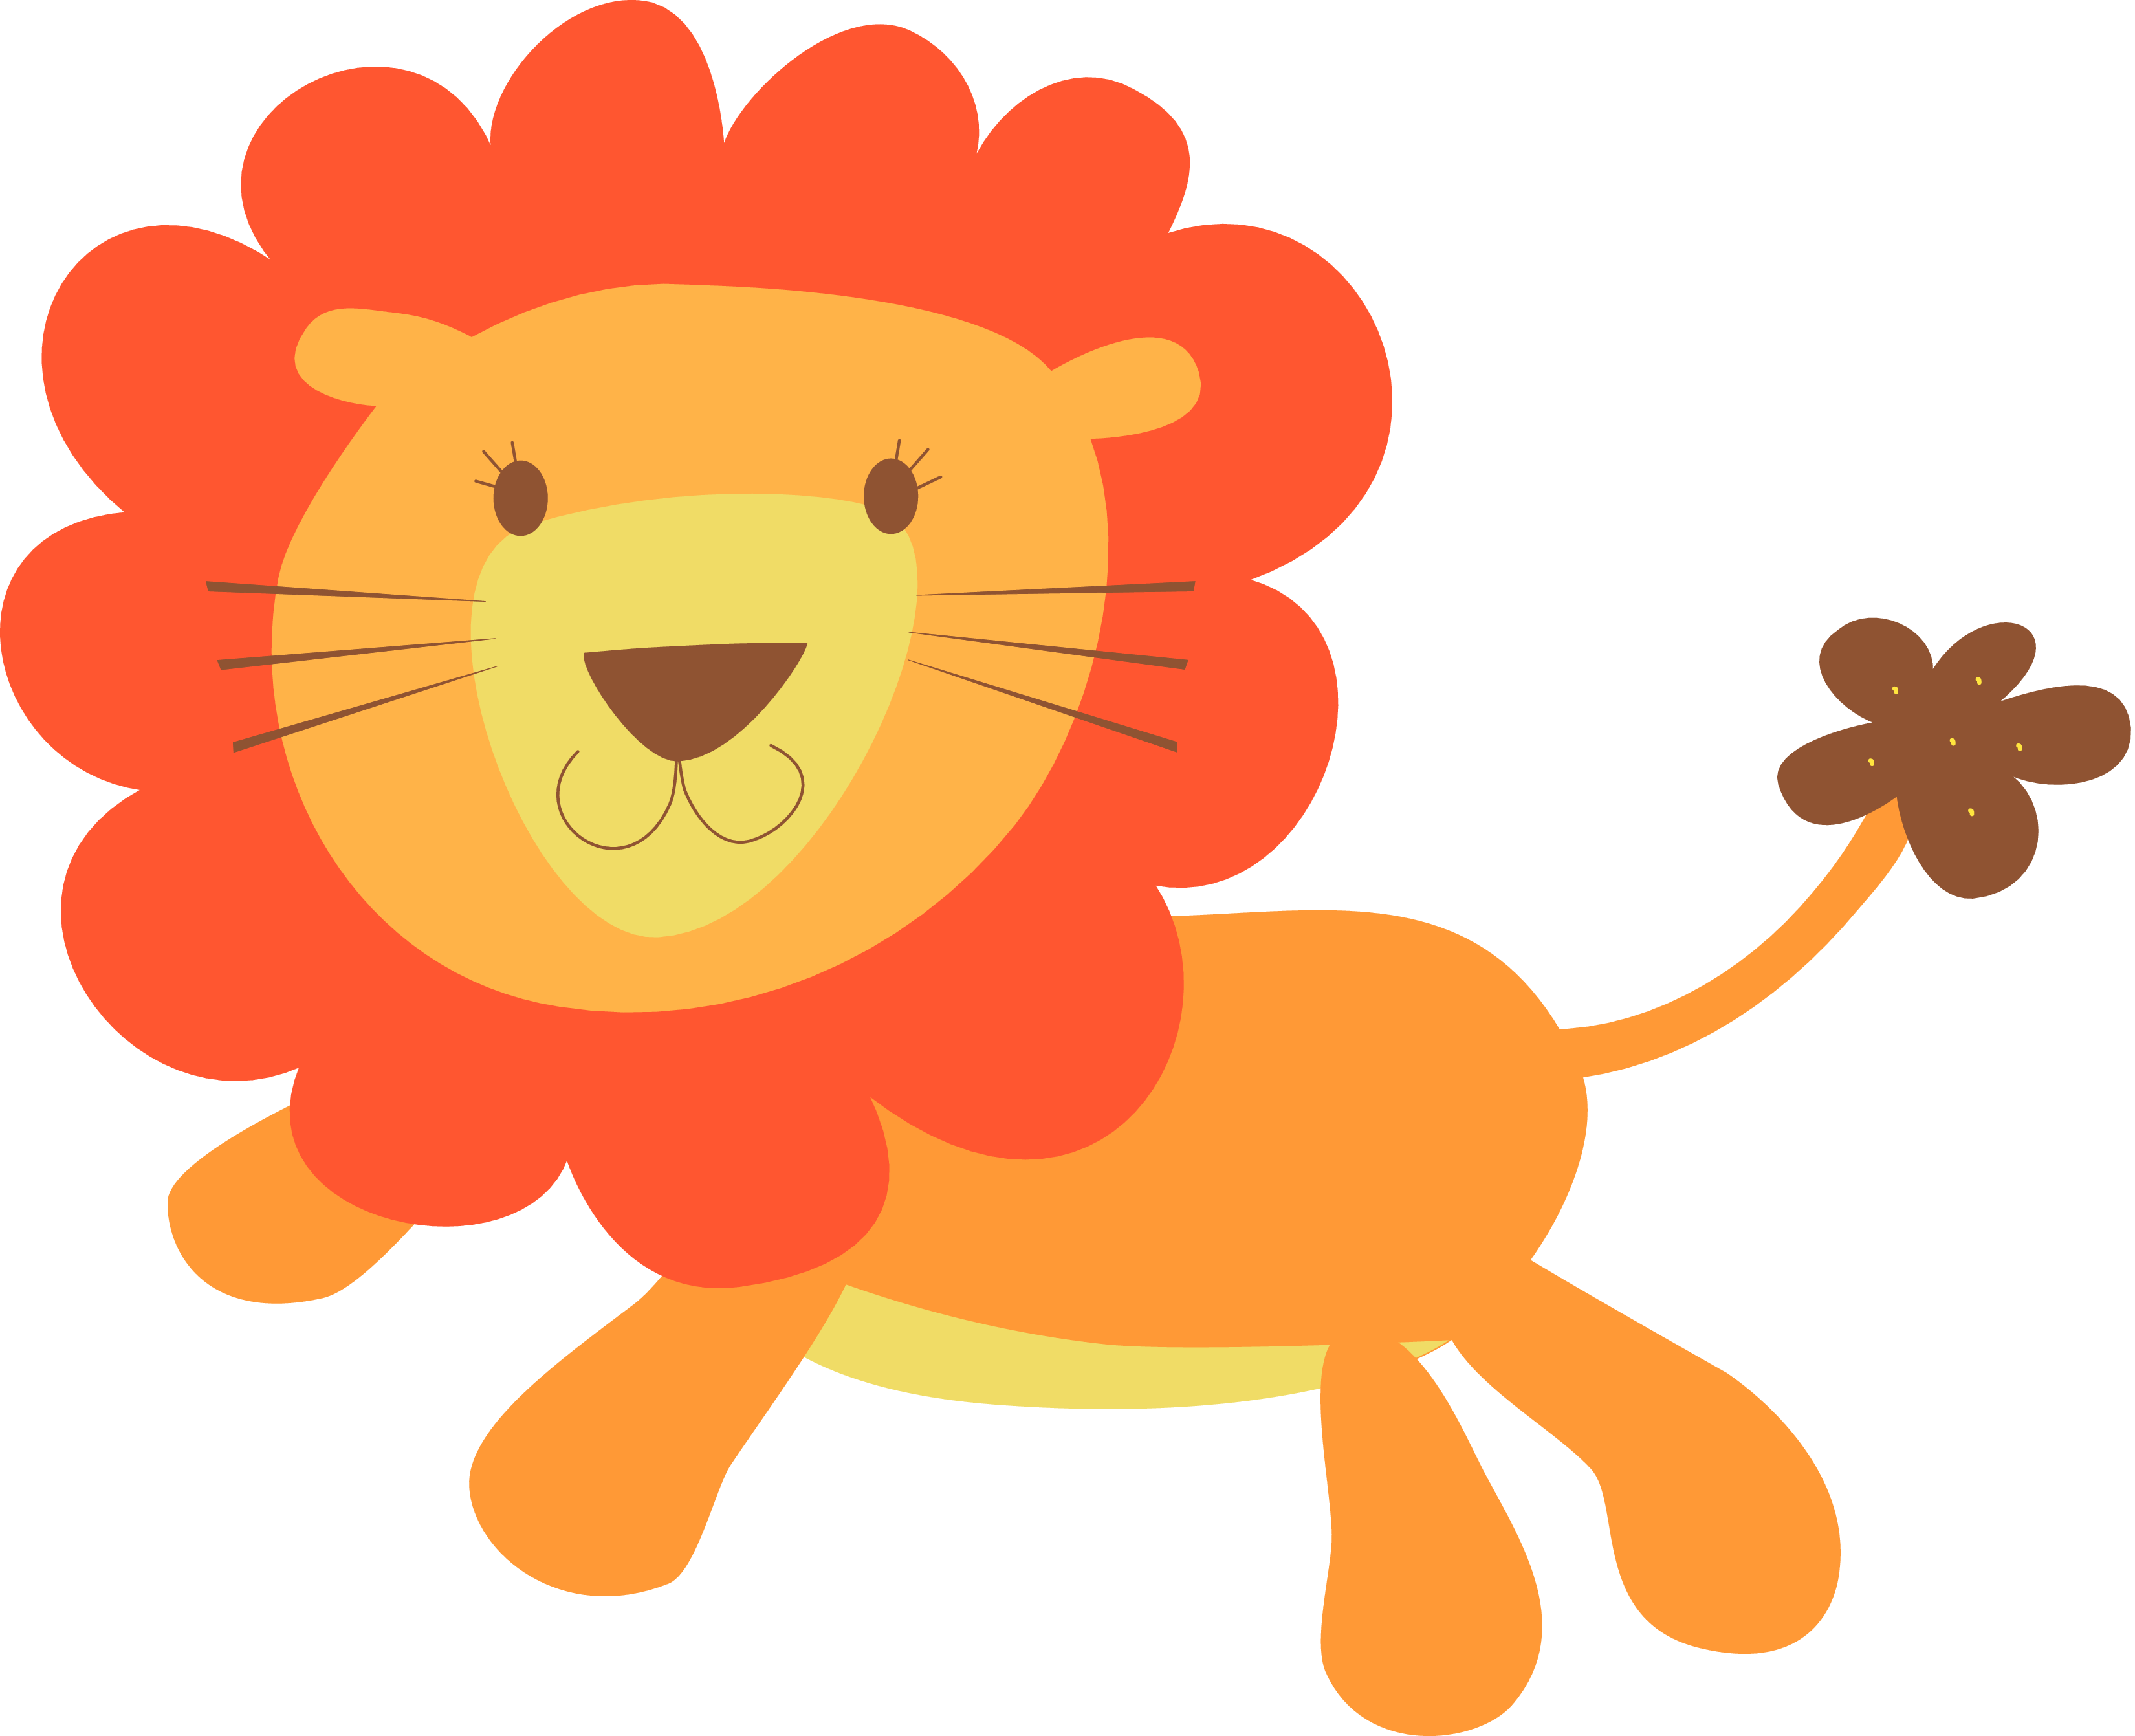 Baby lion face clipart clip art free library Cute Wild Animal Clipart | Free download best Cute Wild Animal ... clip art free library